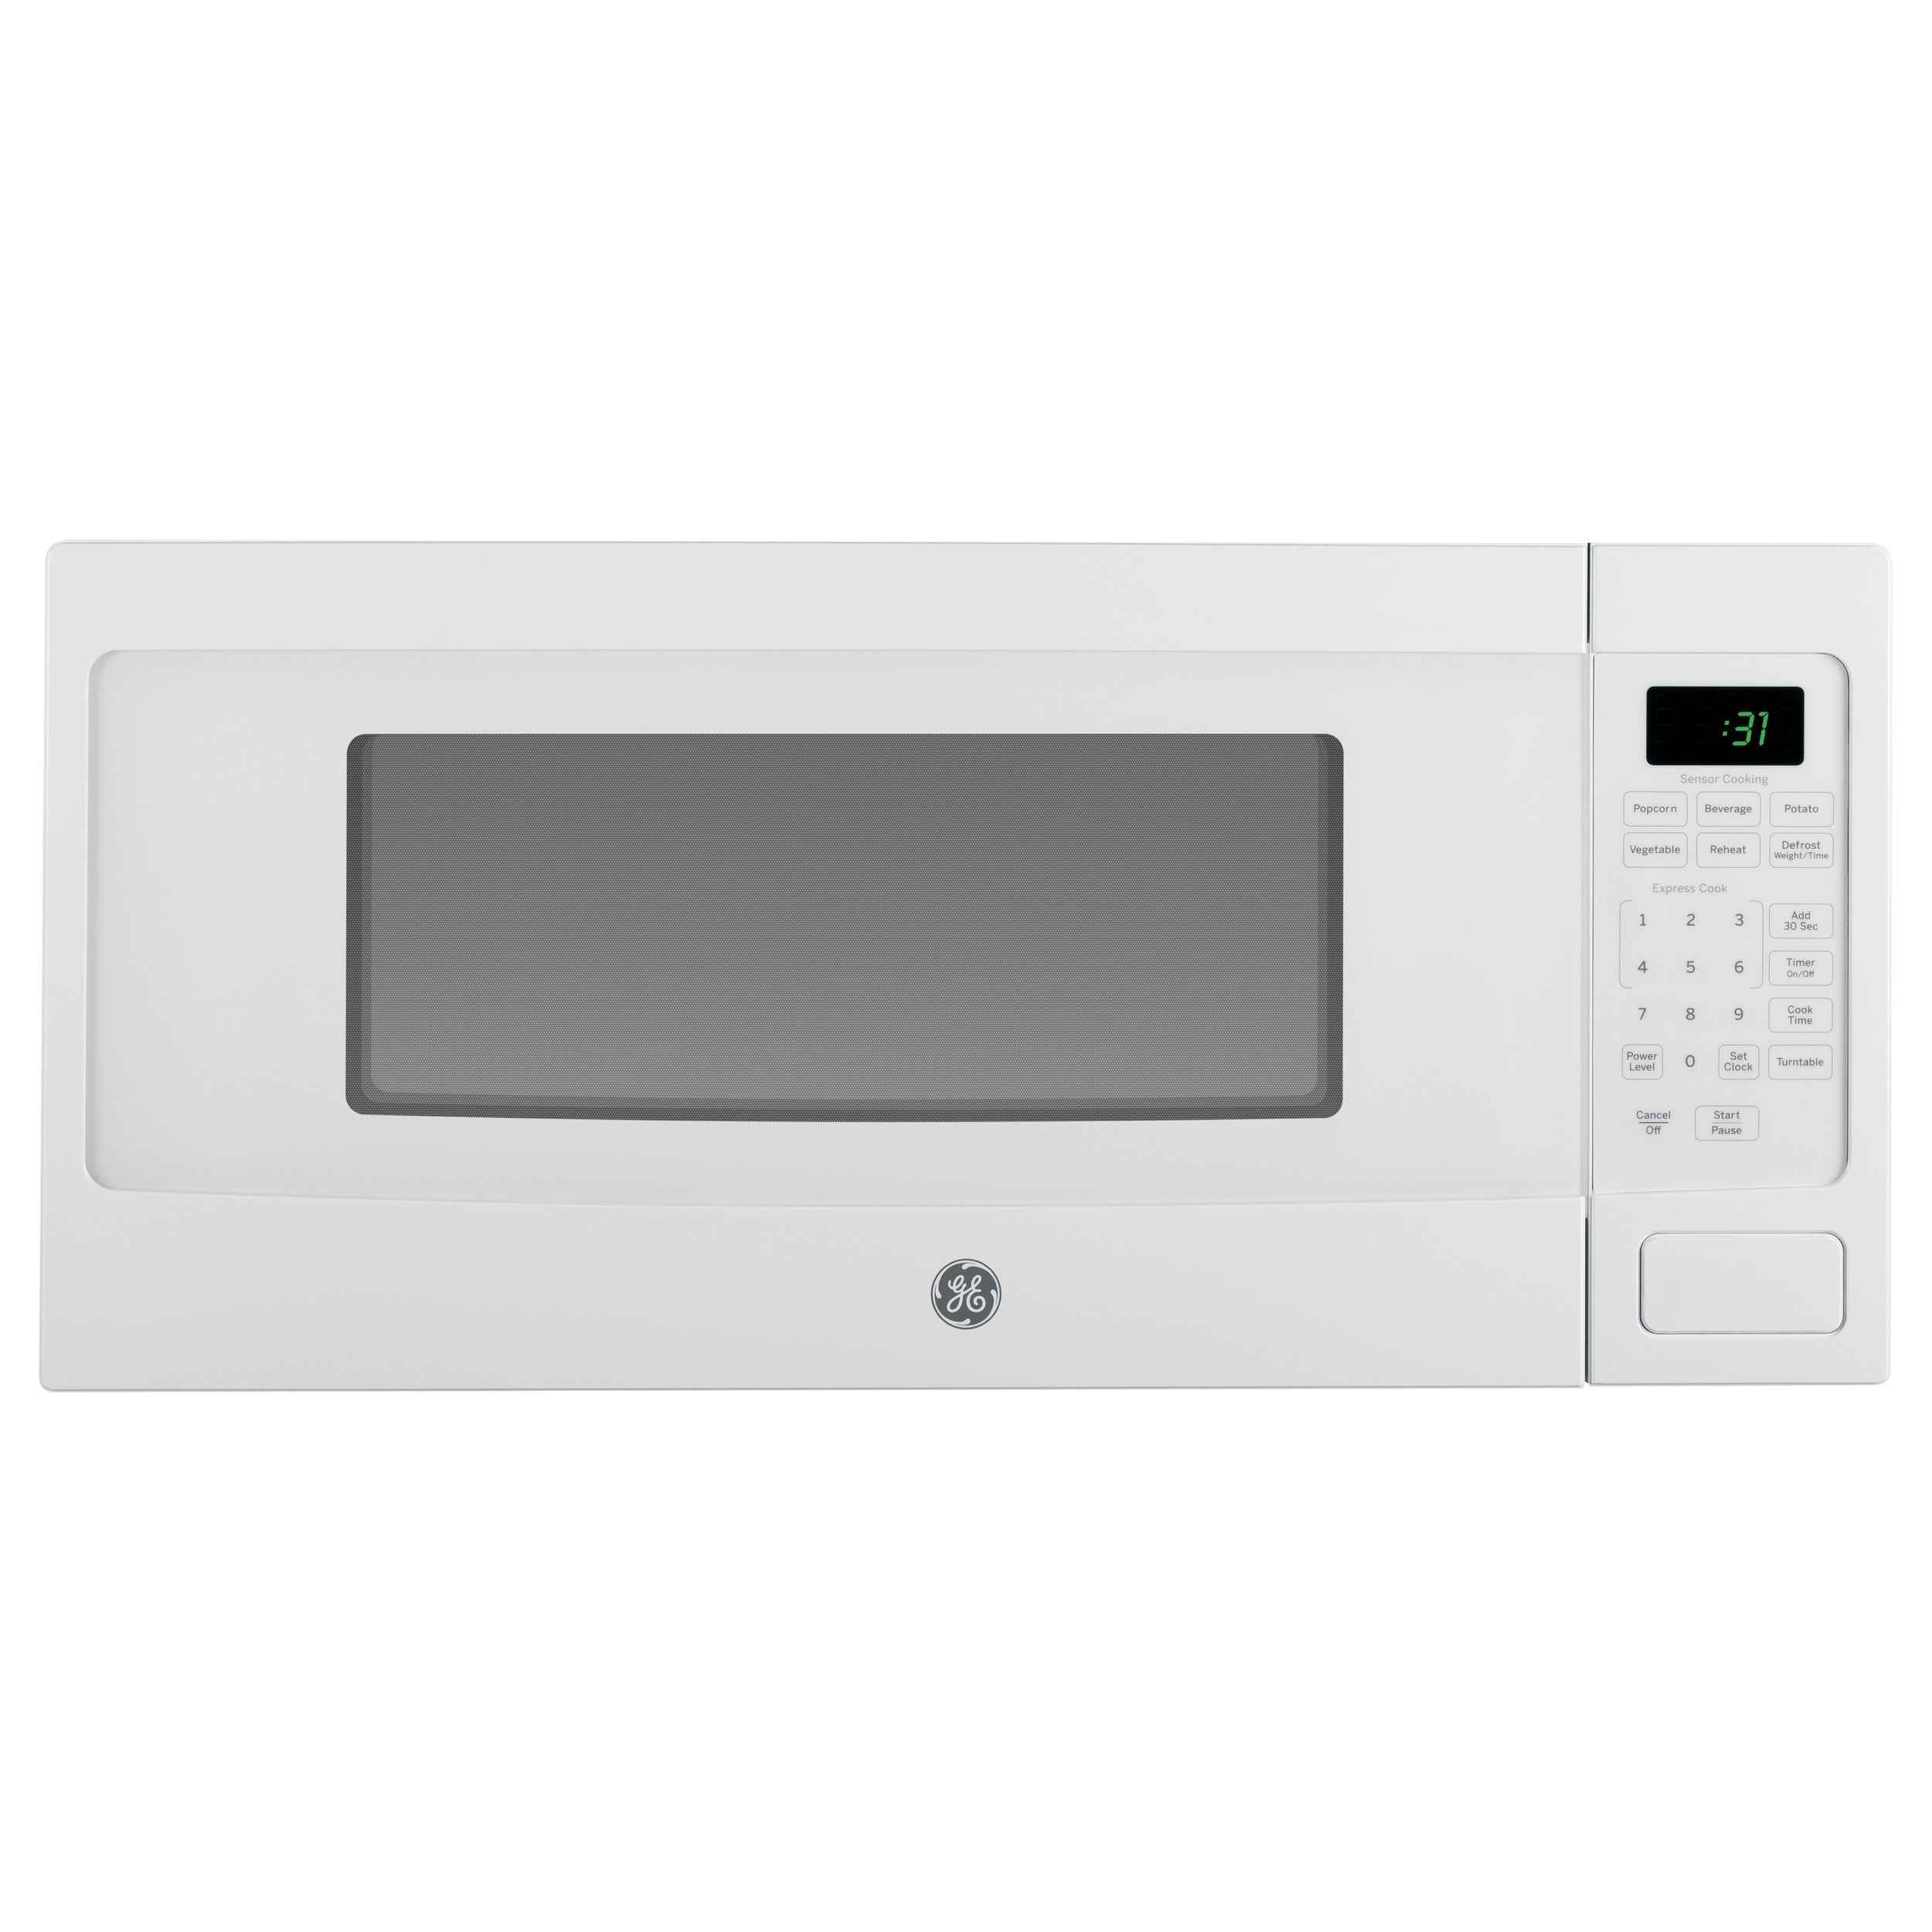 GE Profile Series 1.1-cubic Feet Countertop Microwave Oven white